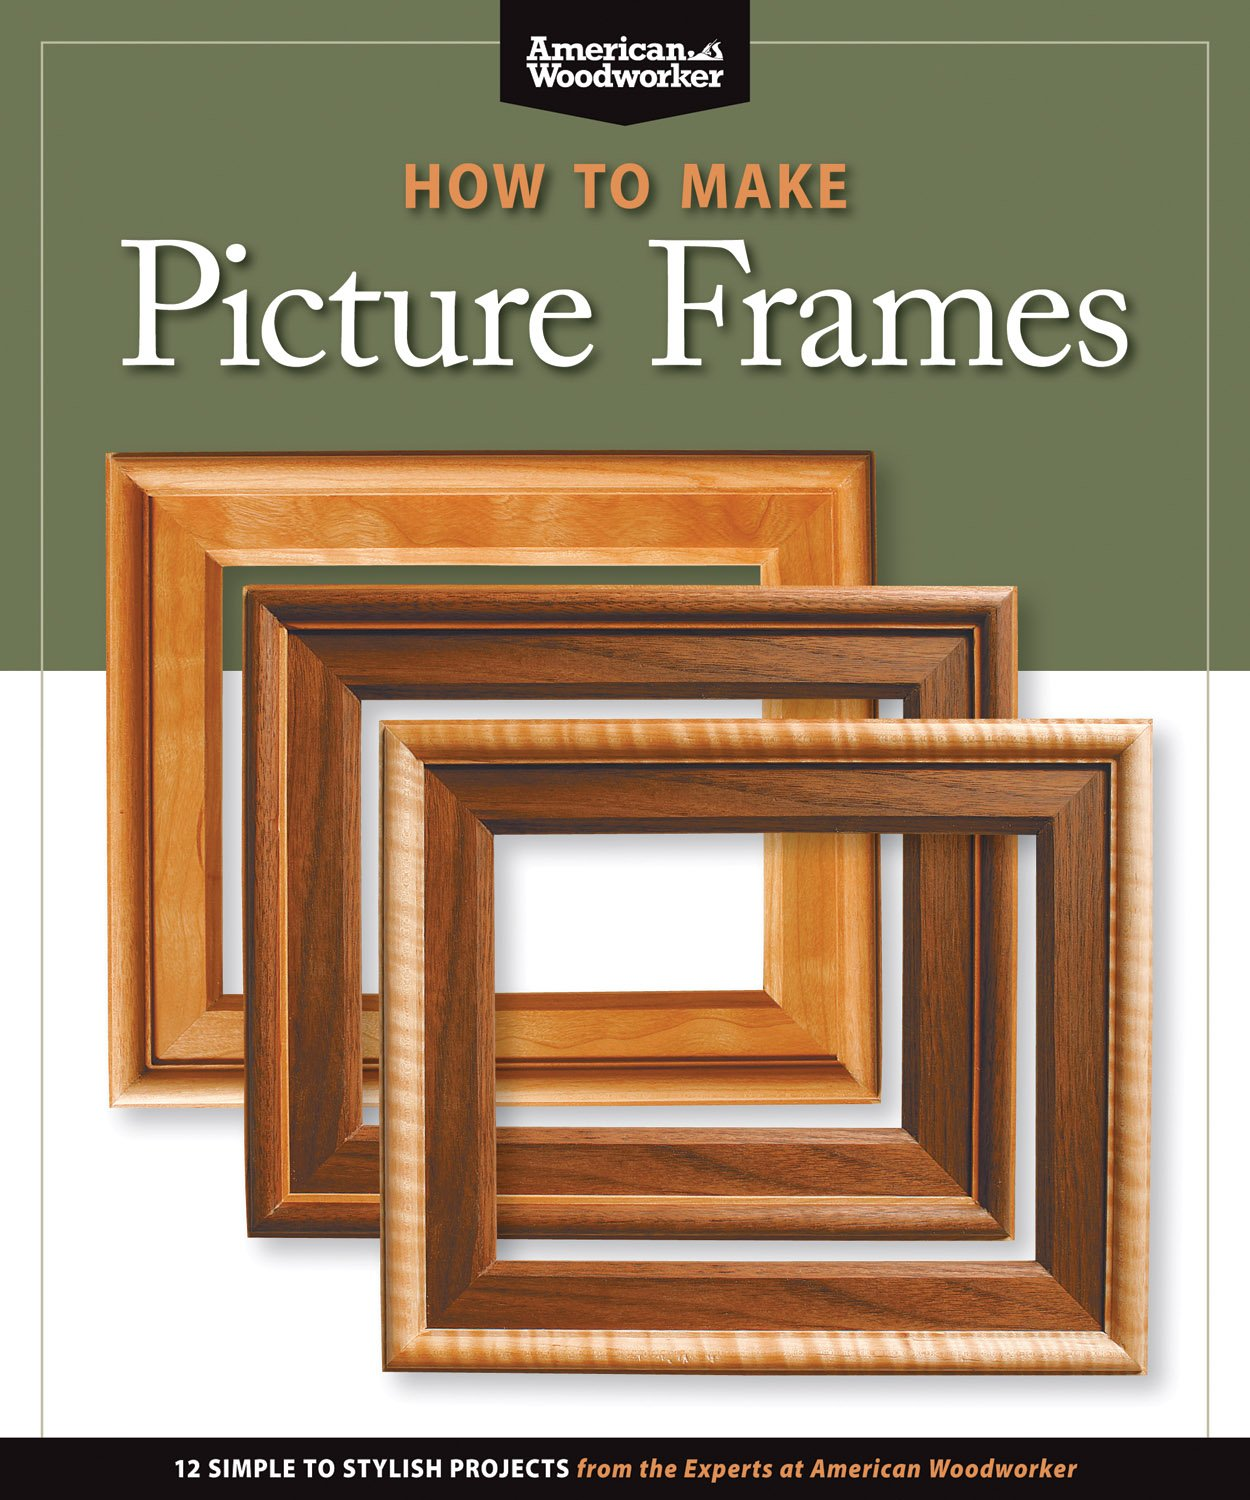 How to make picture frames best of aw 12 simple to stylish how to make picture frames best of aw 12 simple to stylish projects from the experts at american woodworker american woodworker best of american jeuxipadfo Choice Image